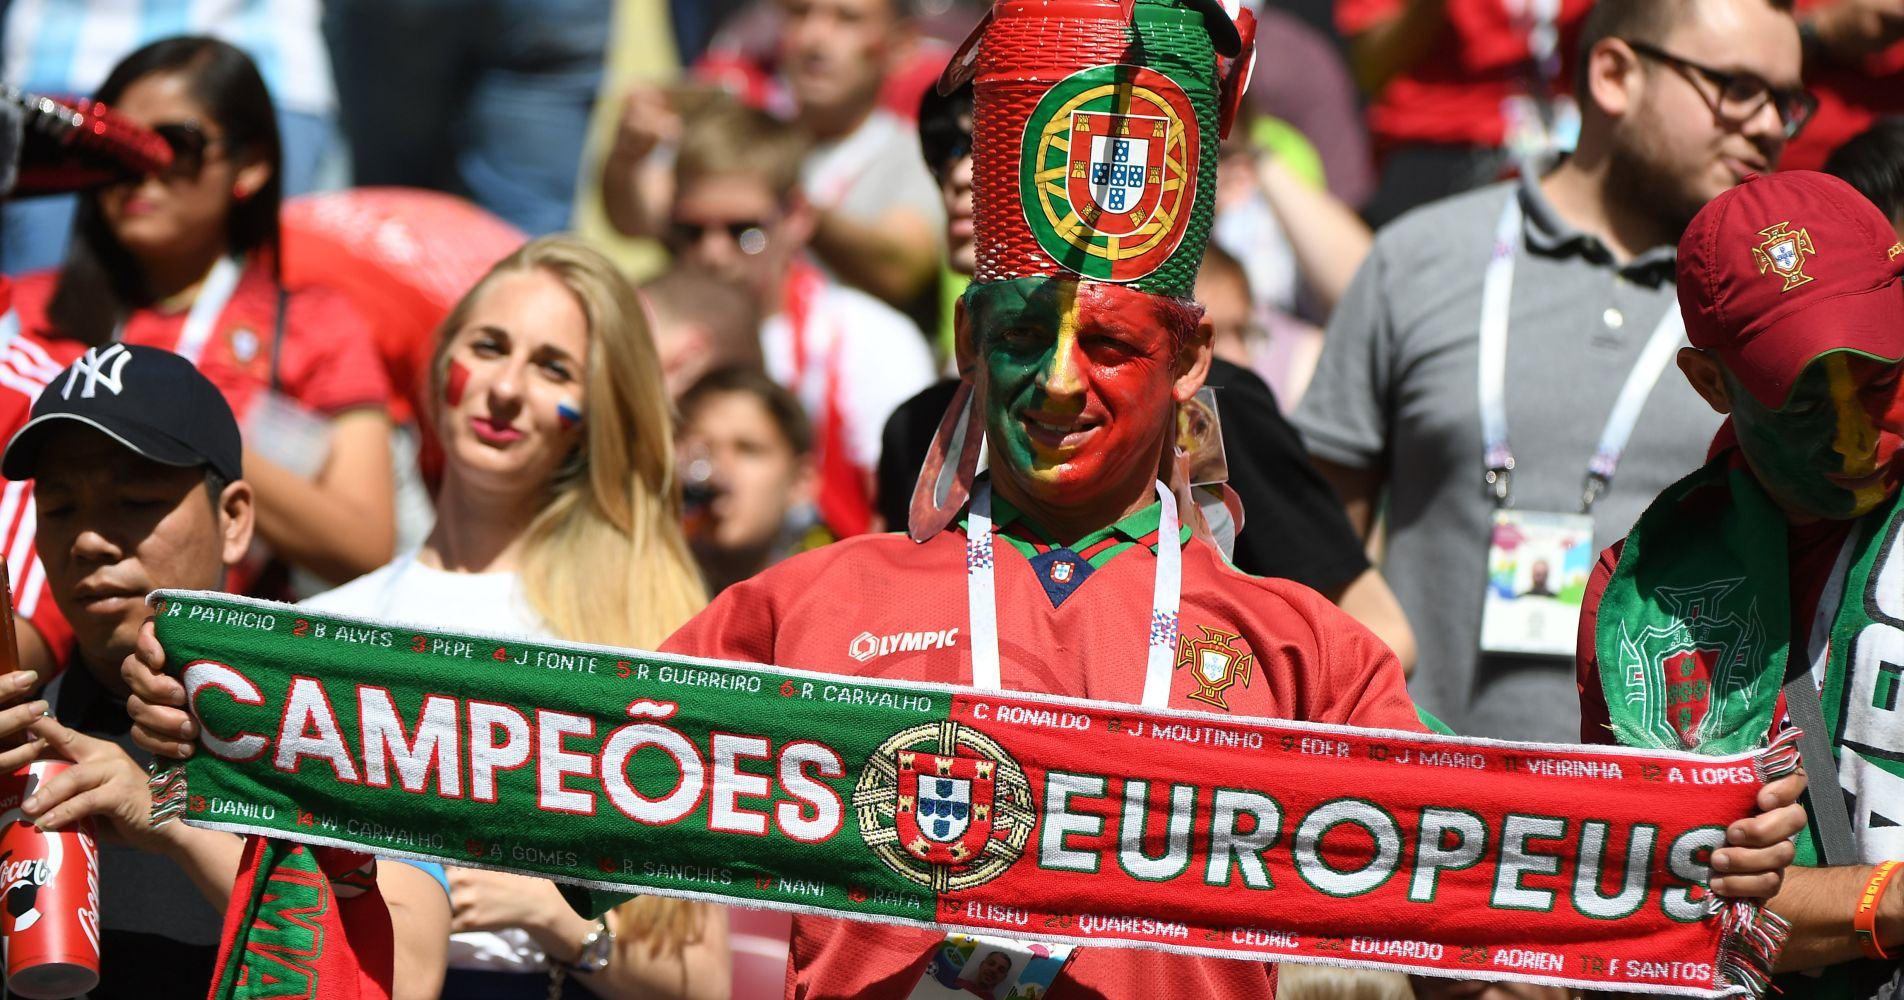 A Portugal fan reminds us who the current champions of Europe are